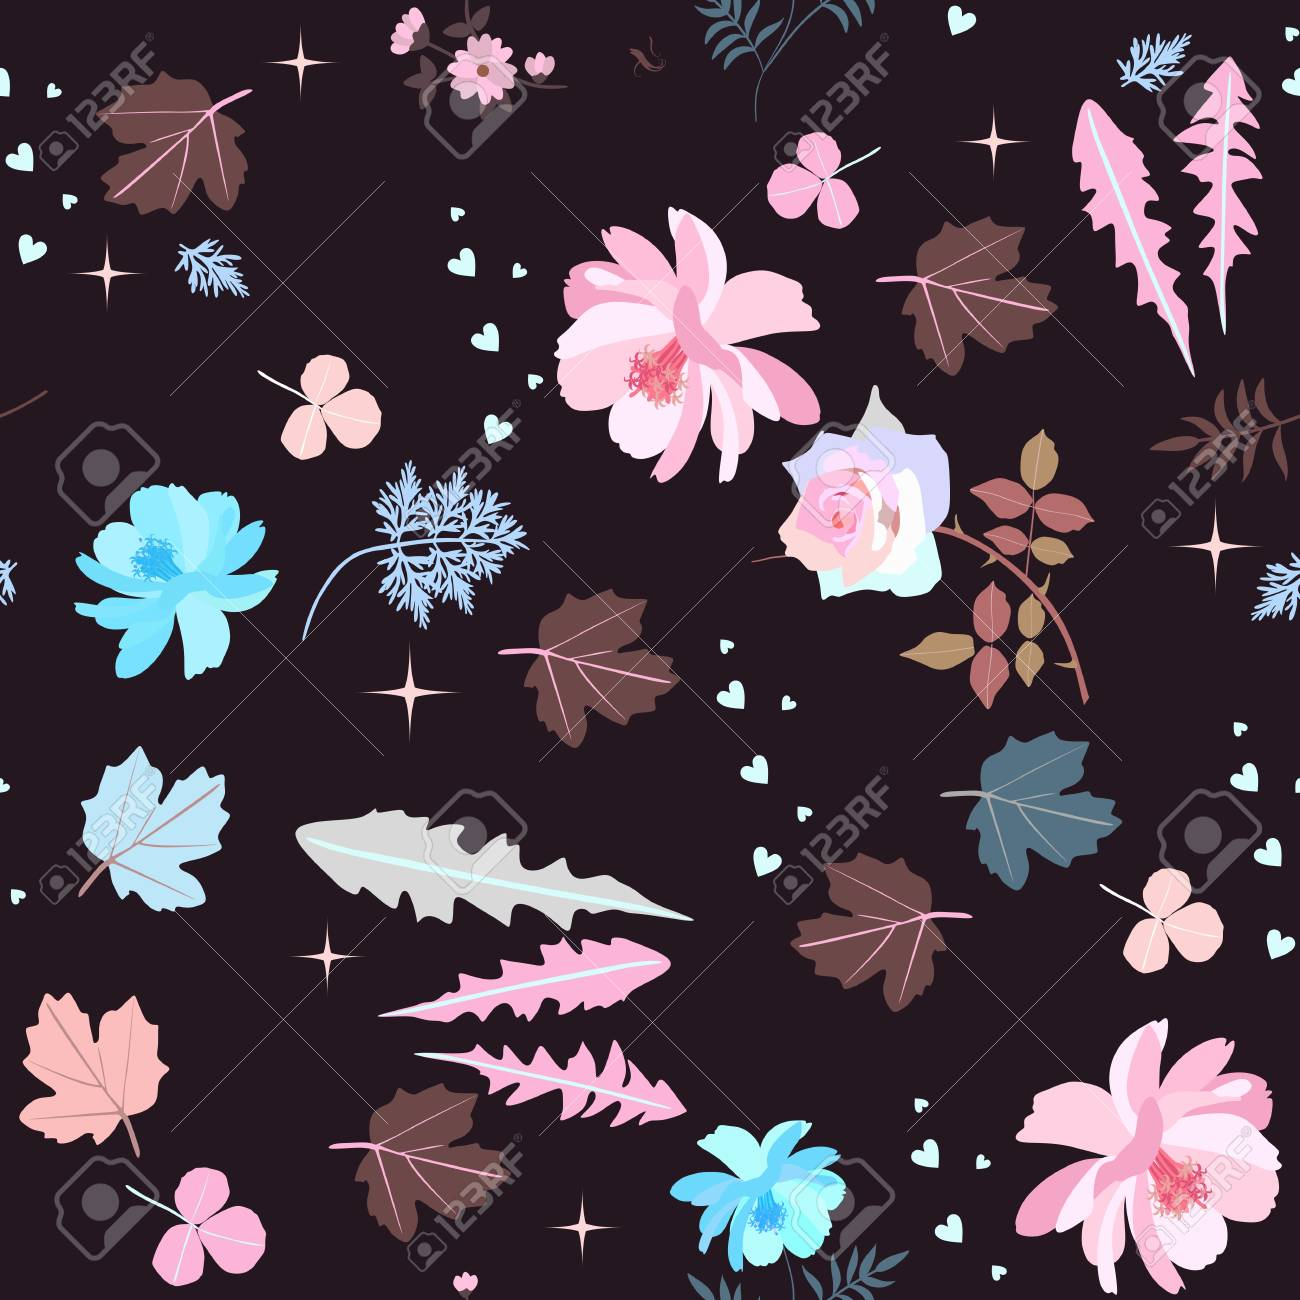 Beautiful Pink And Blue Flowers Leaves Hearts And Stars On